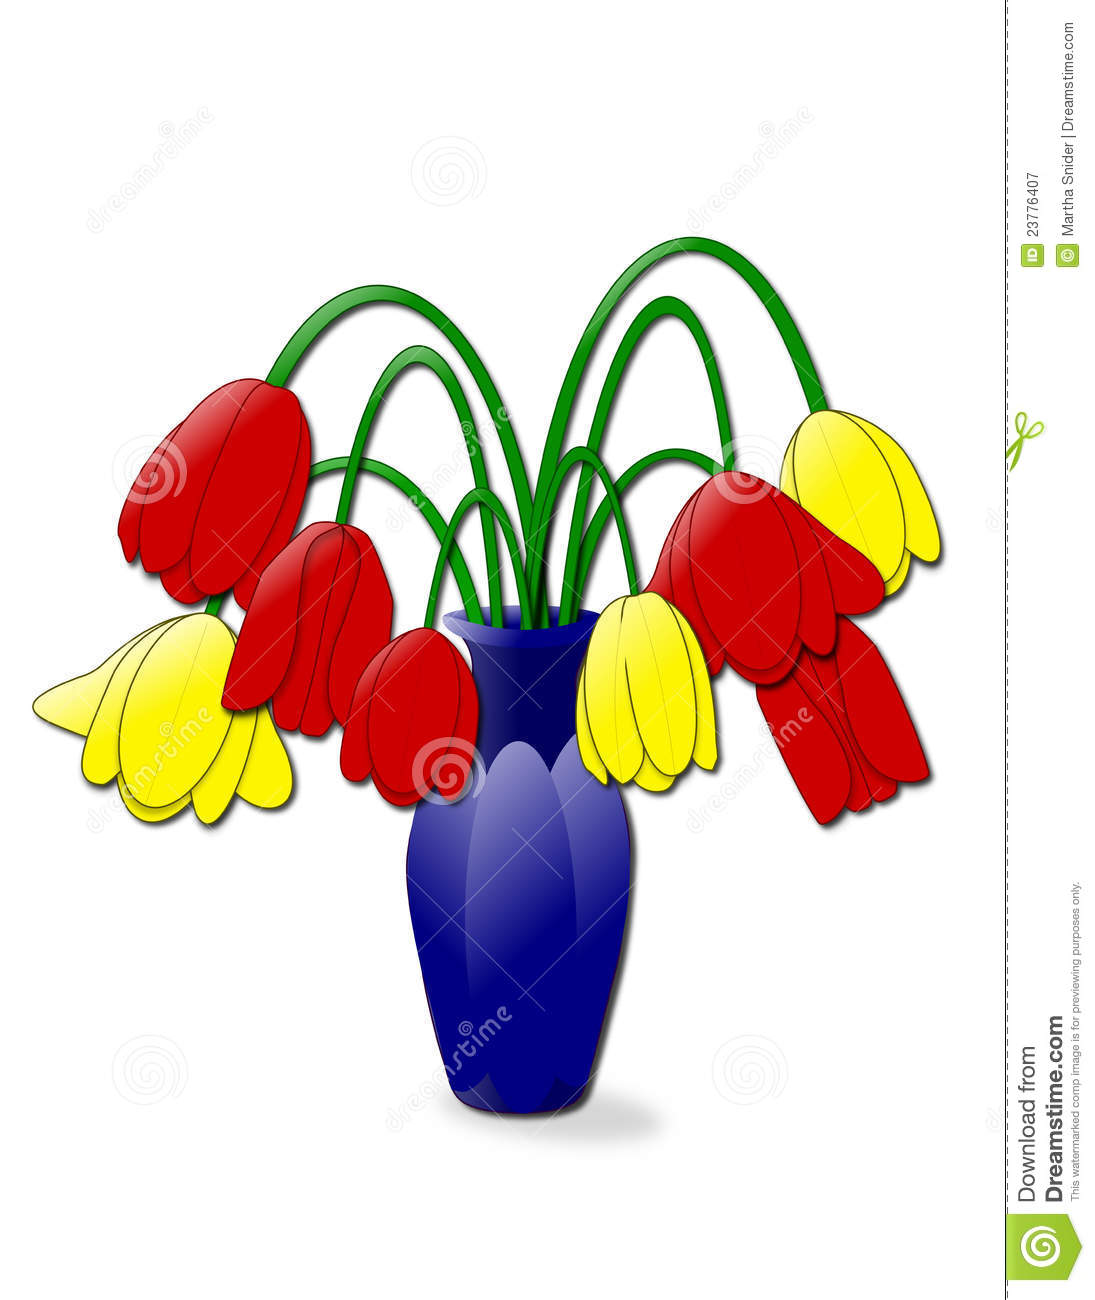 clipart dead flowers - photo #10